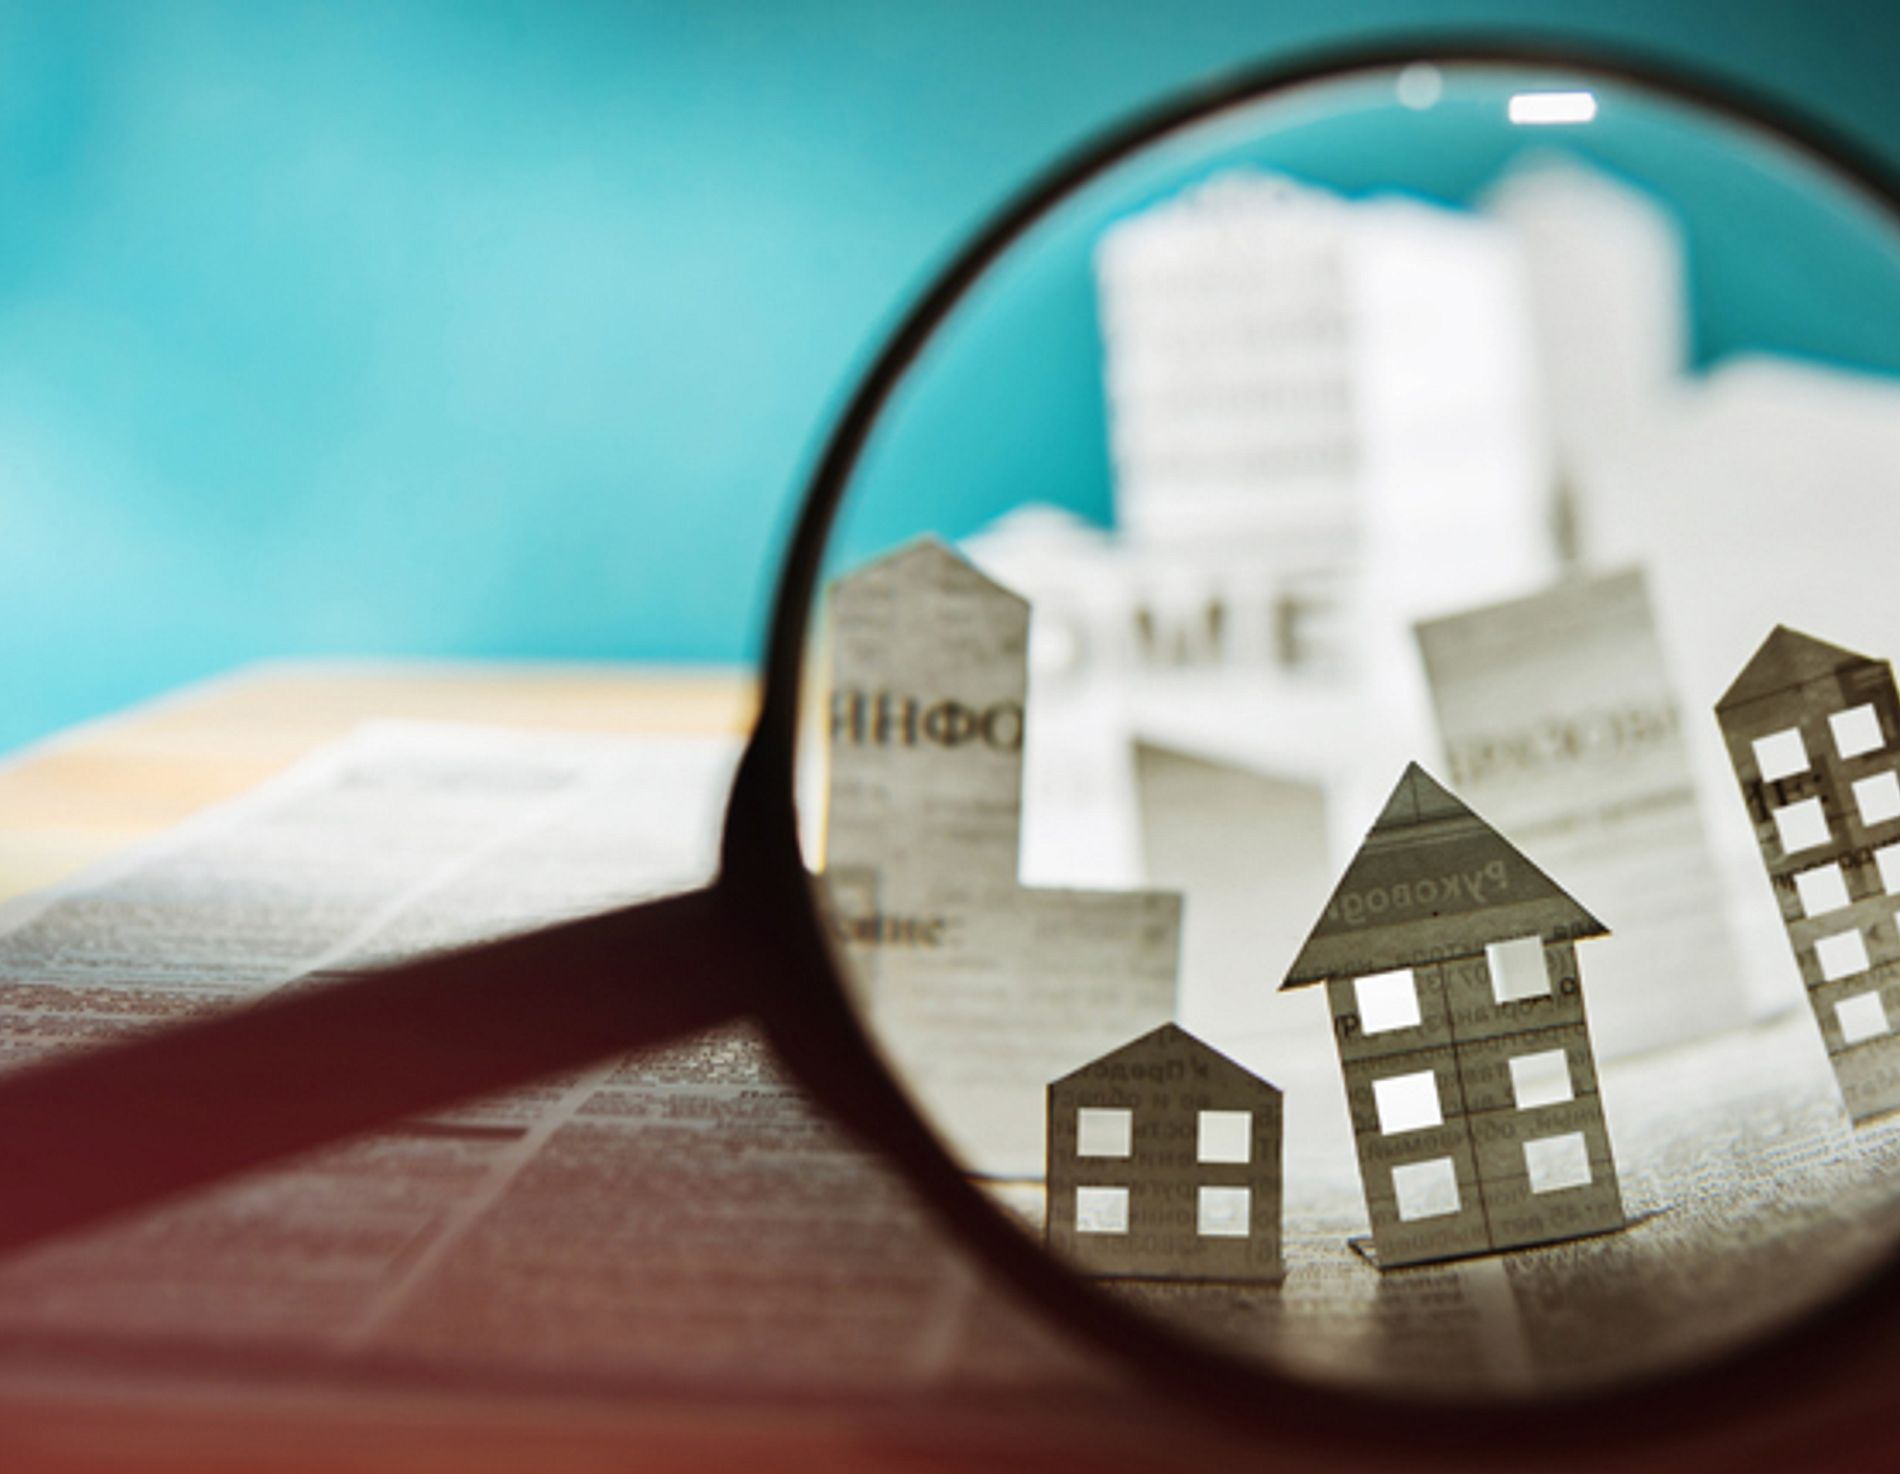 Magnifying glass showing small homes cut from newspaper